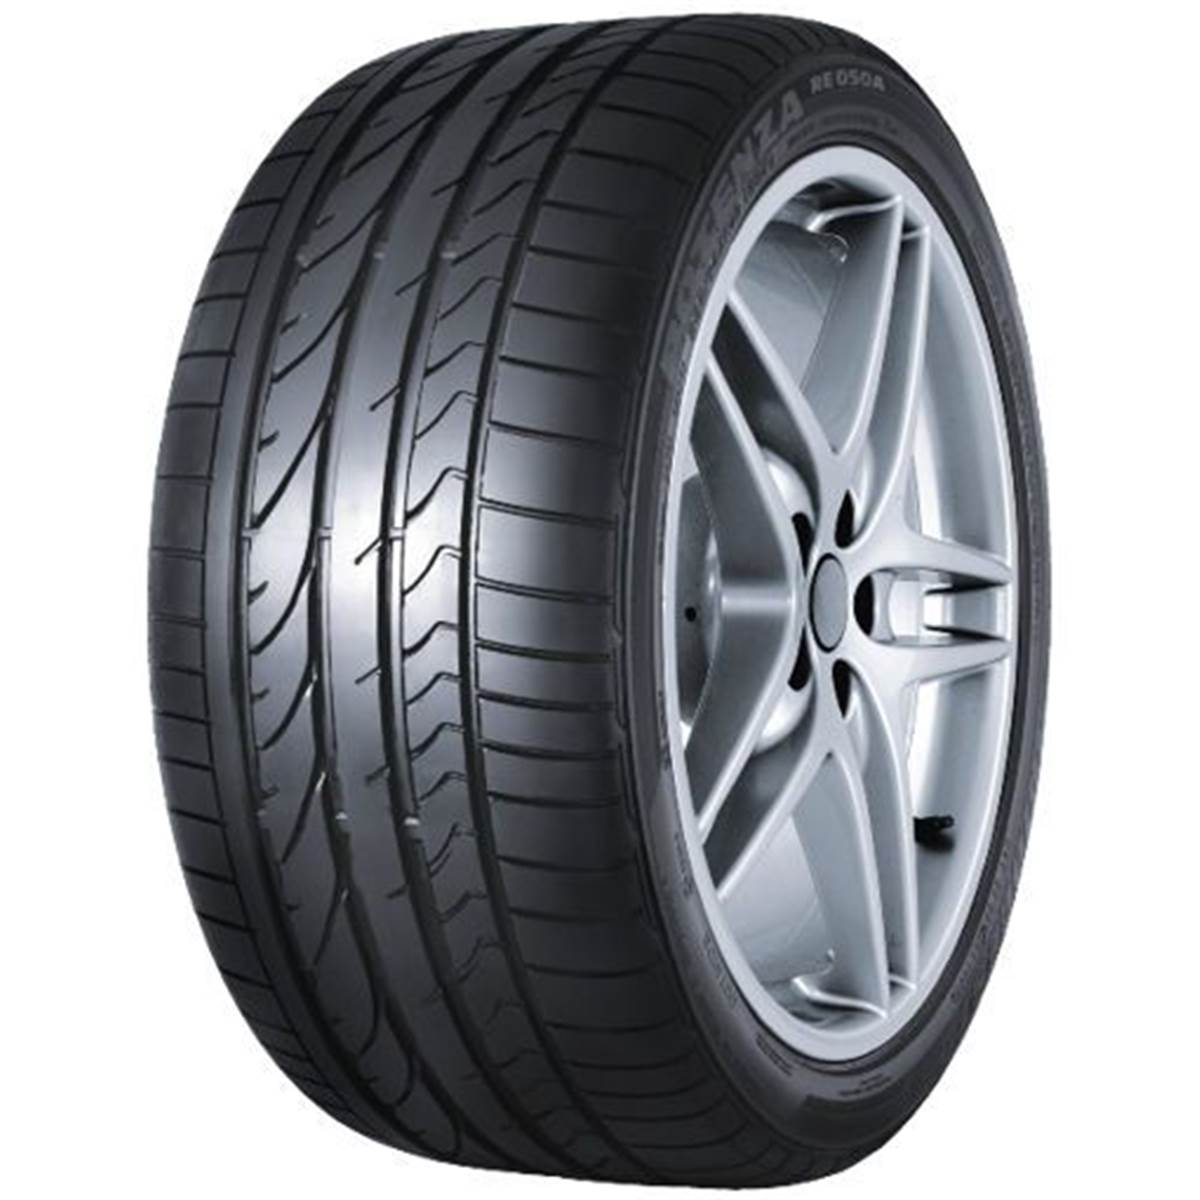 Pneu Bridgestone 295/30R19 100Y Potenza Re050 XL